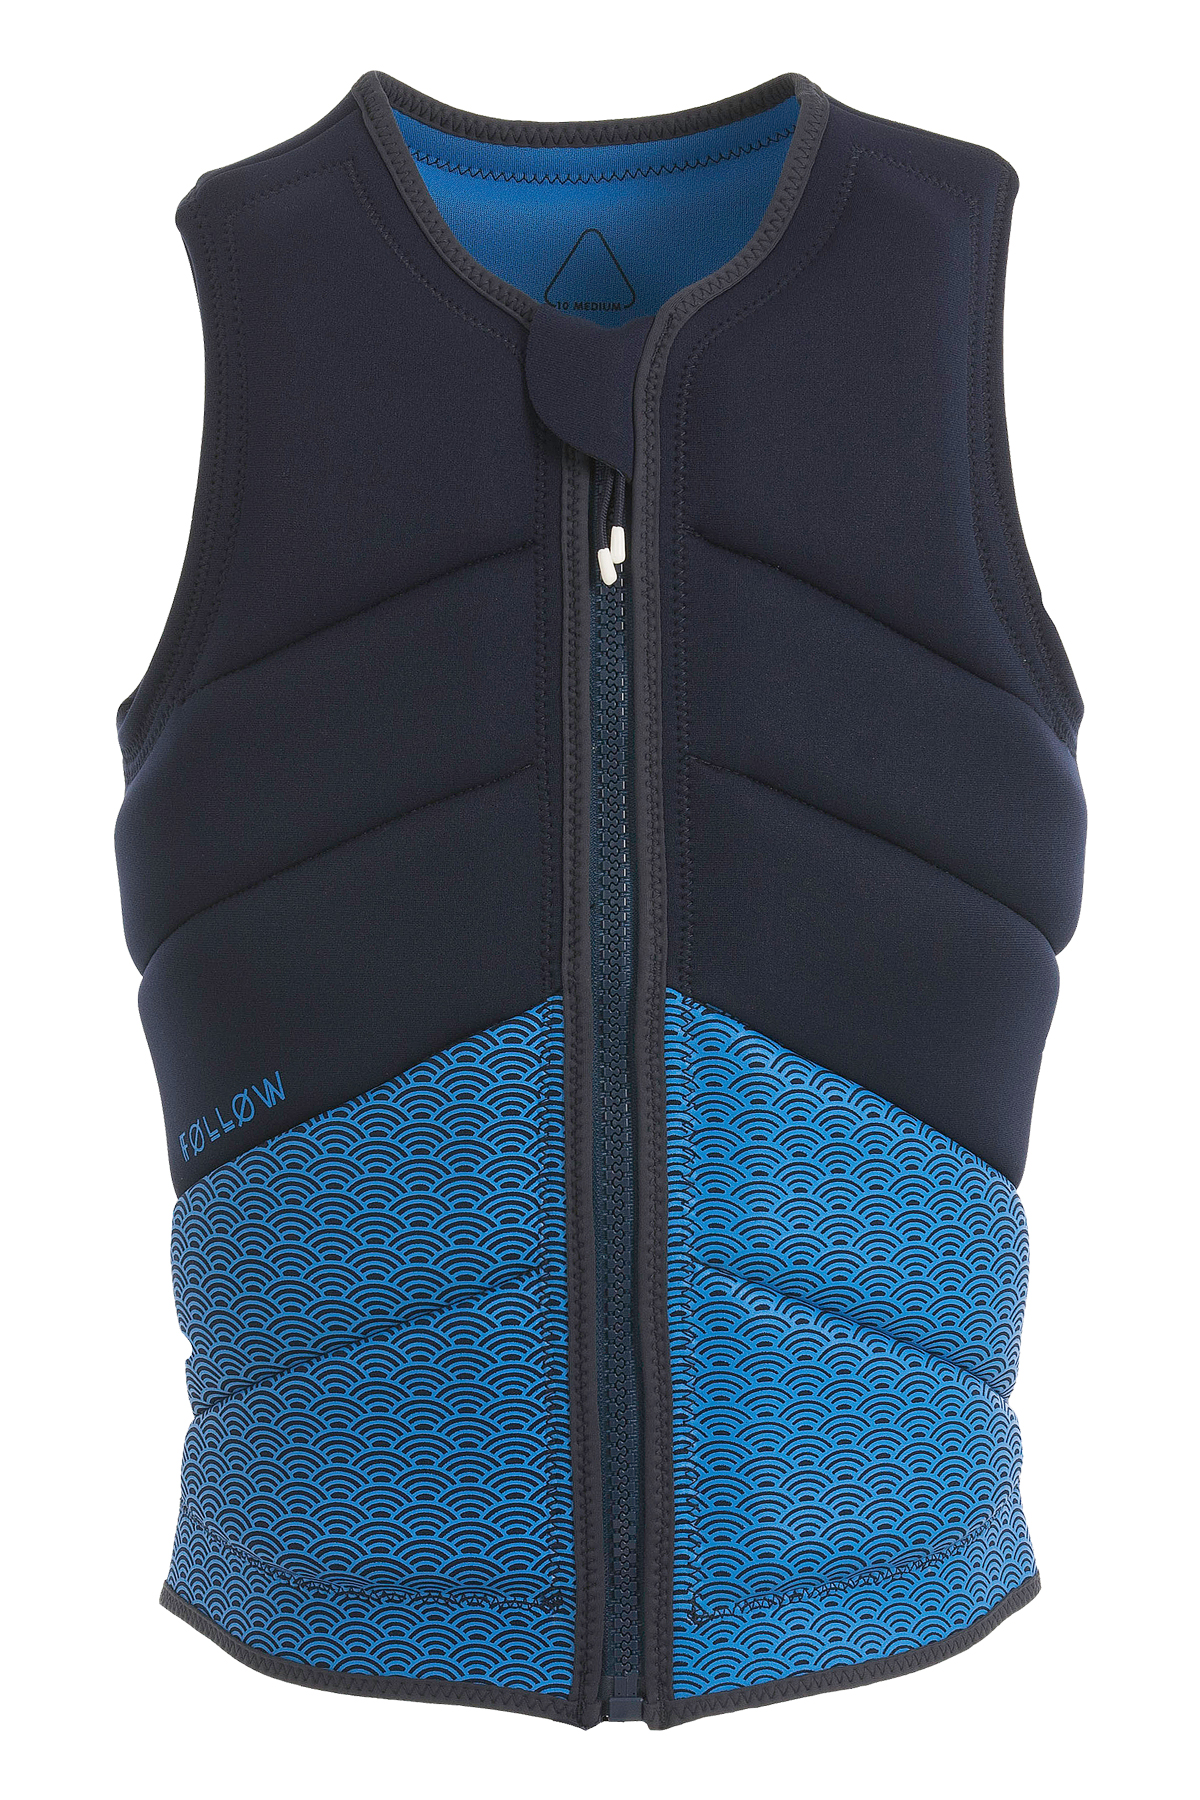 LACE LADIES IMPACT VEST - MARINE FOLLOW 2019